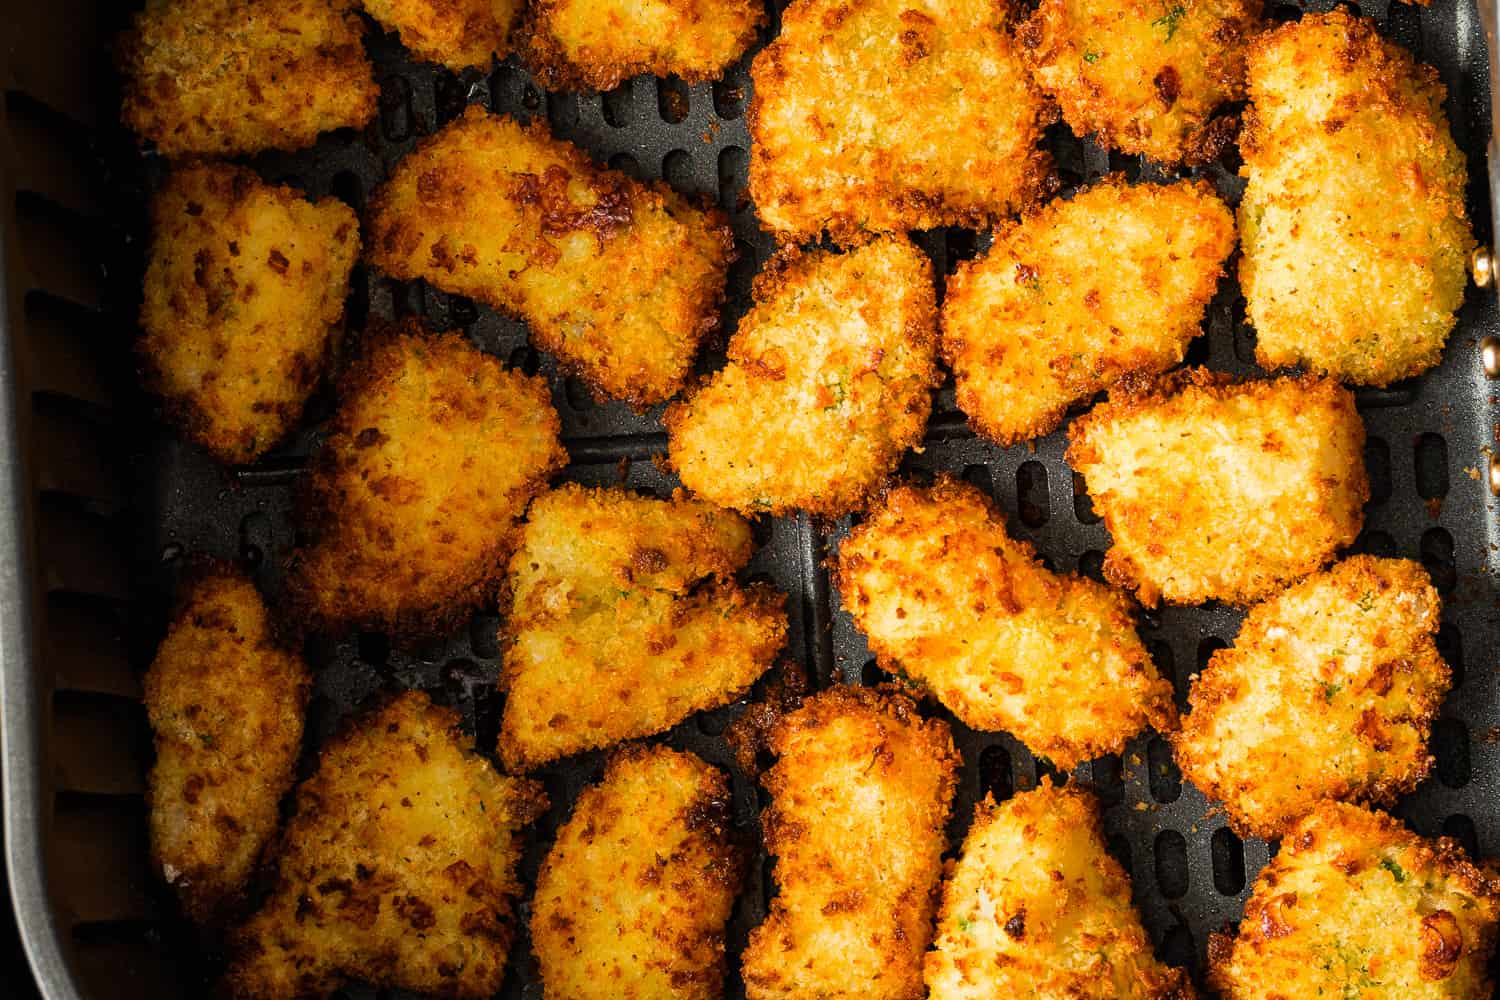 Crispy and delicious air fryer fish nuggets.